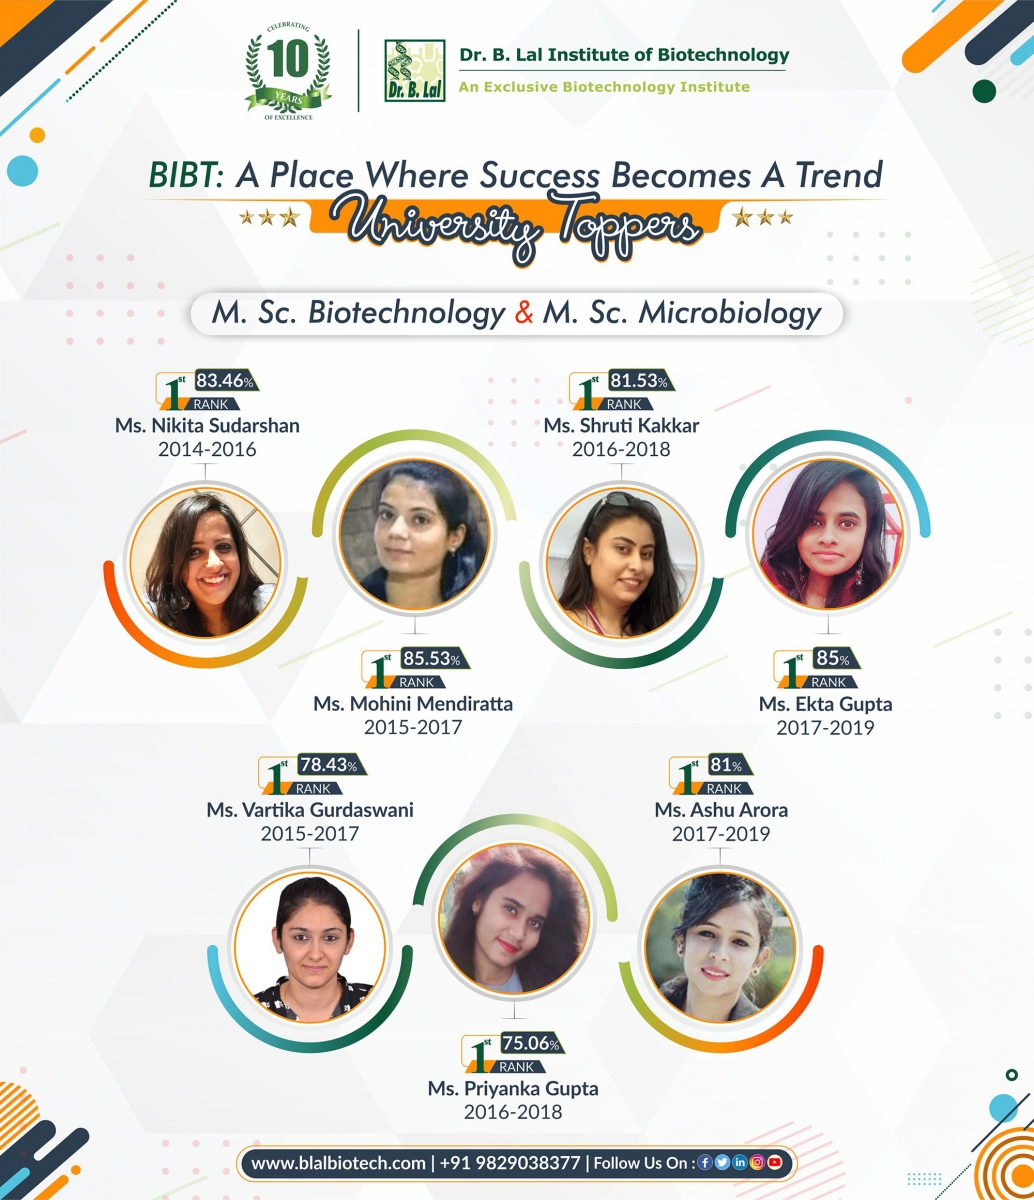 Rajasthan University Toppers | Dr. B. Lal Institute of Biotechnology